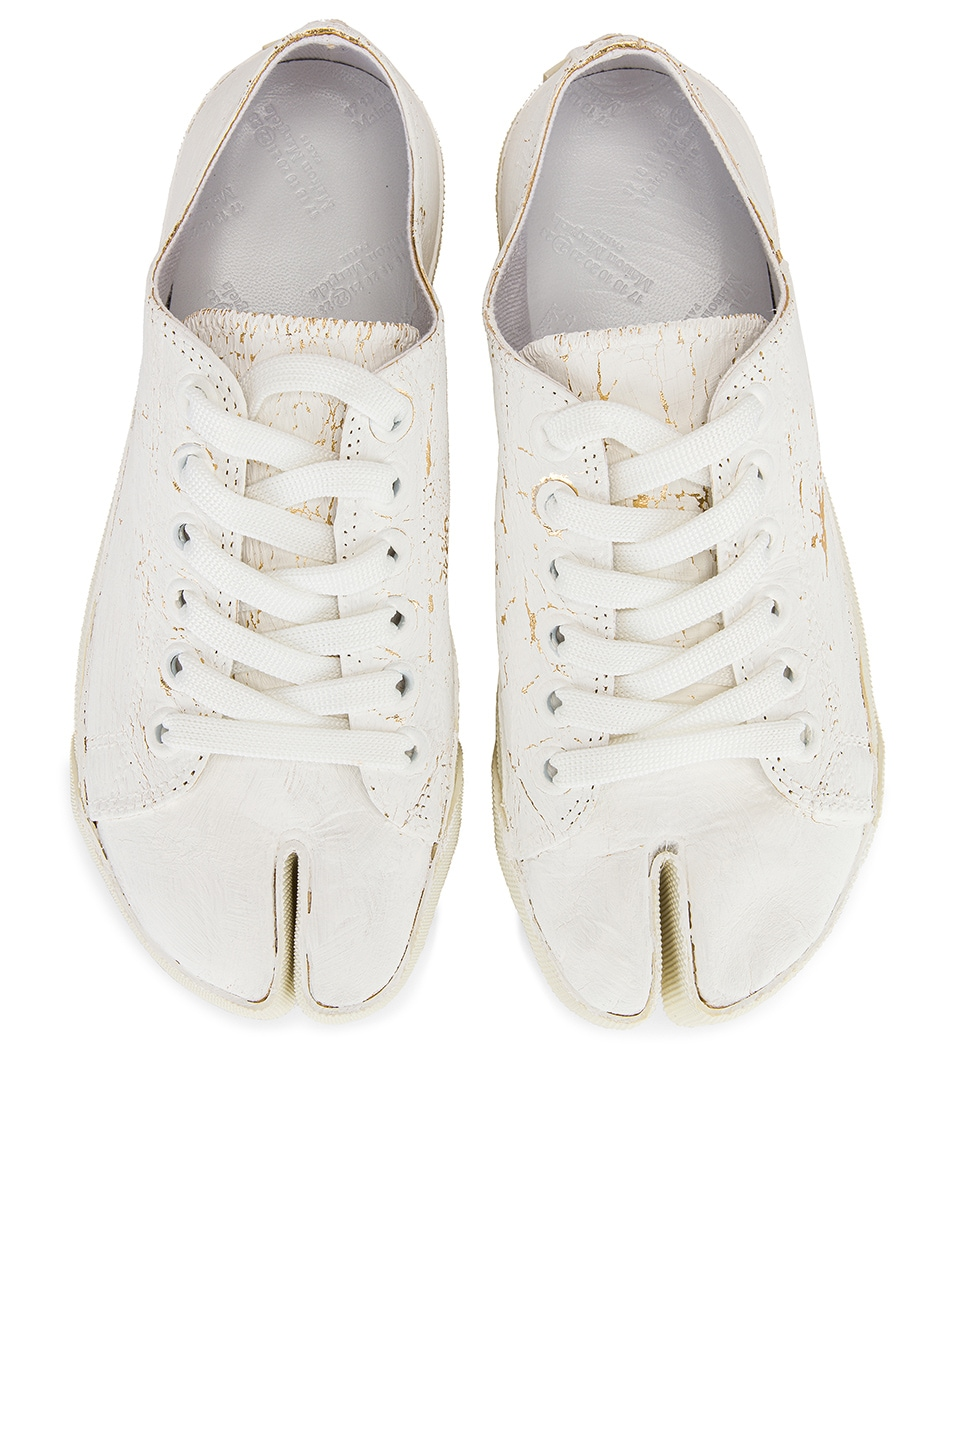 Image 1 of Maison Margiela Low Top Tabi Sneakers in White & Gold